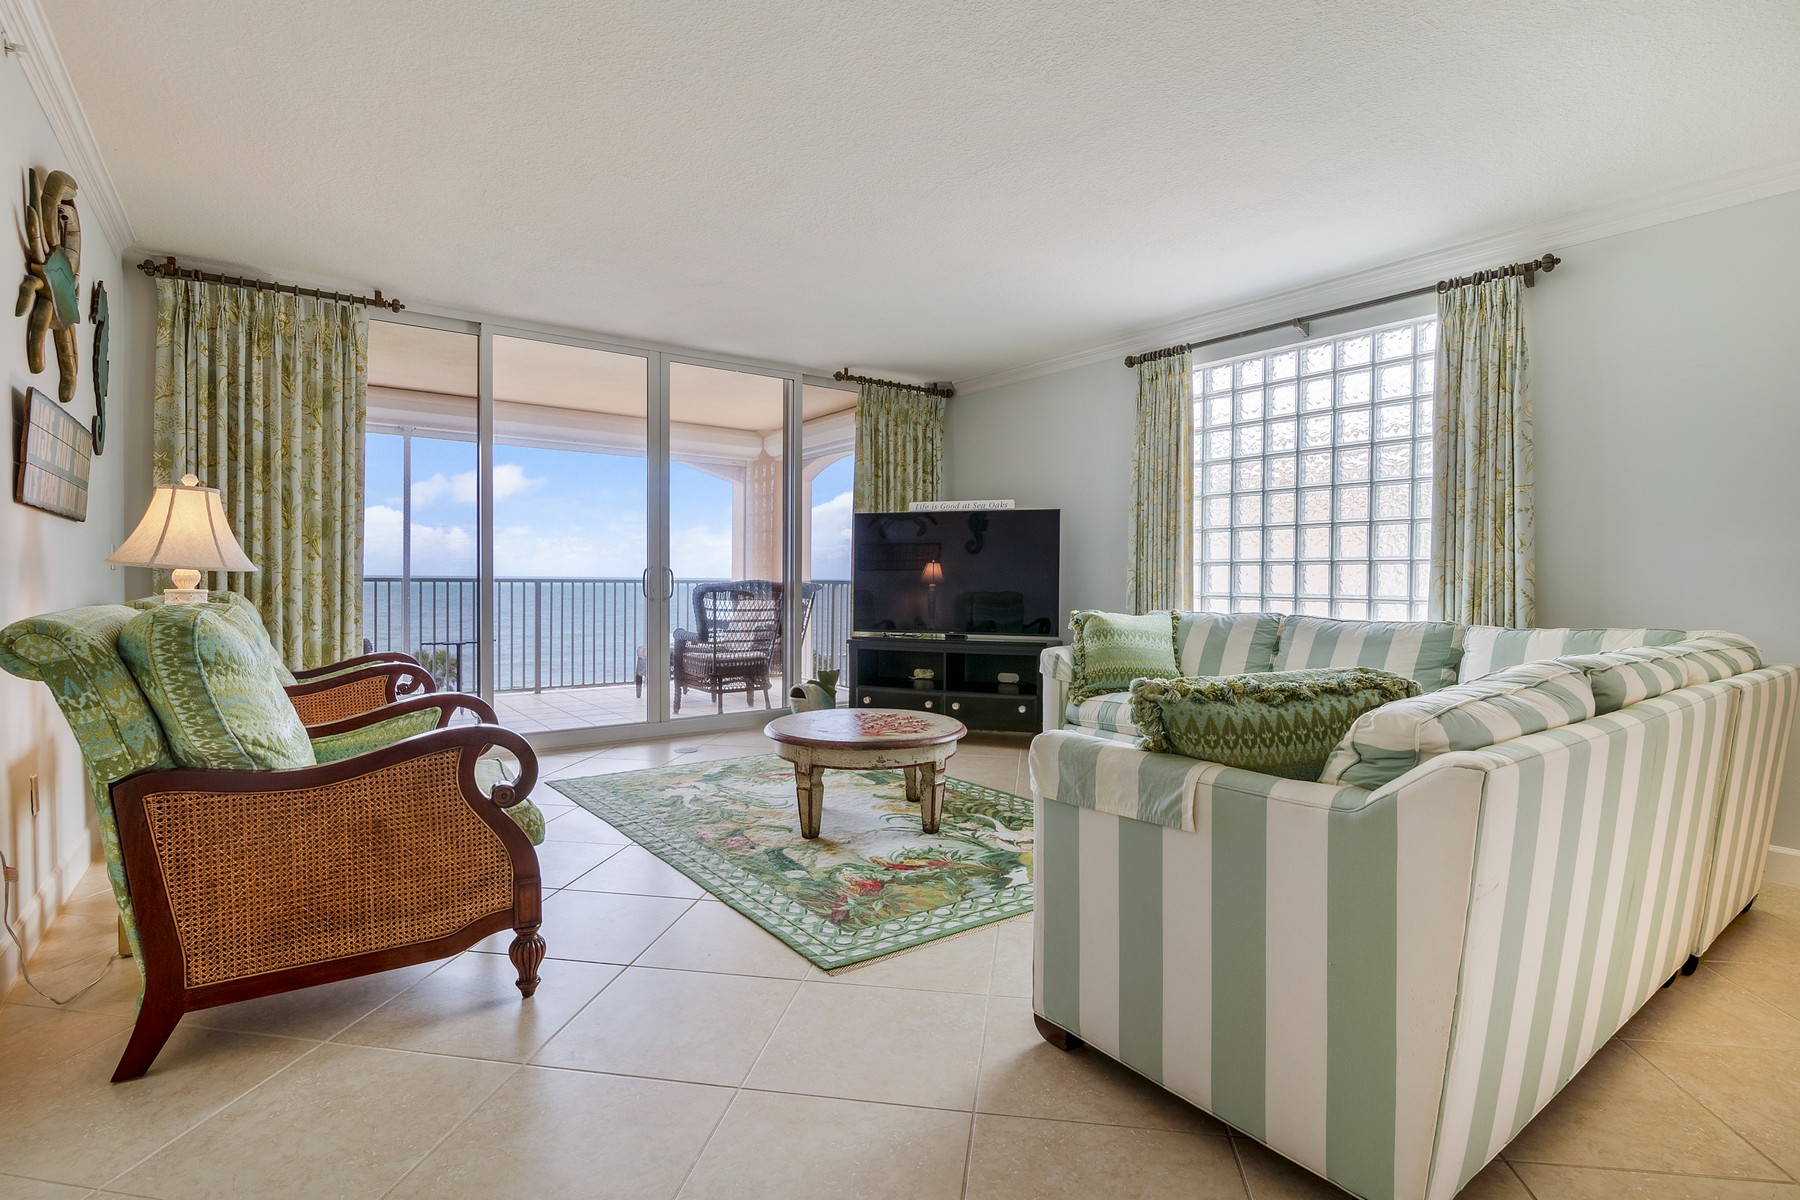 Additional photo for property listing at Top Floor Oceanfront Condo 8866 N Sea Oaks Way #212 Vero Beach, Florida 32963 United States